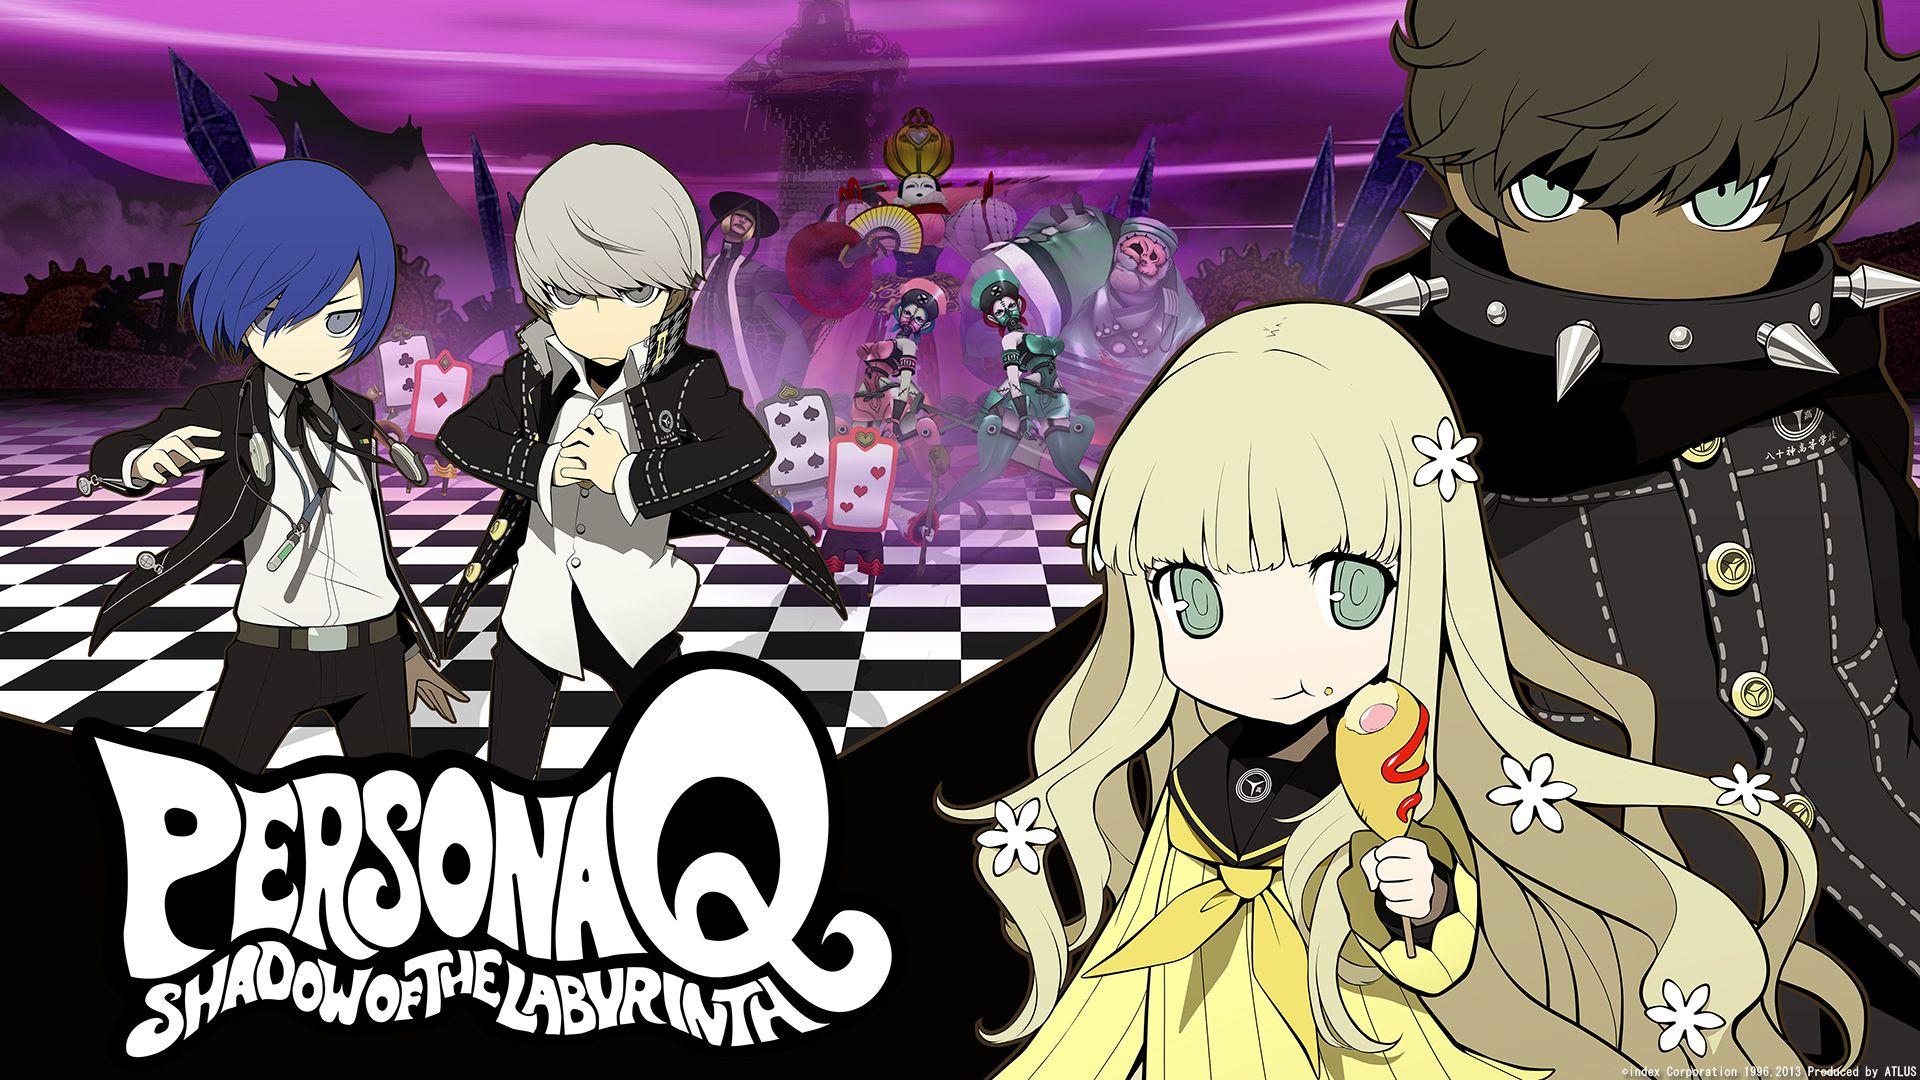 Persona Q Wallpapers Top Free Persona Q Backgrounds Wallpaperaccess